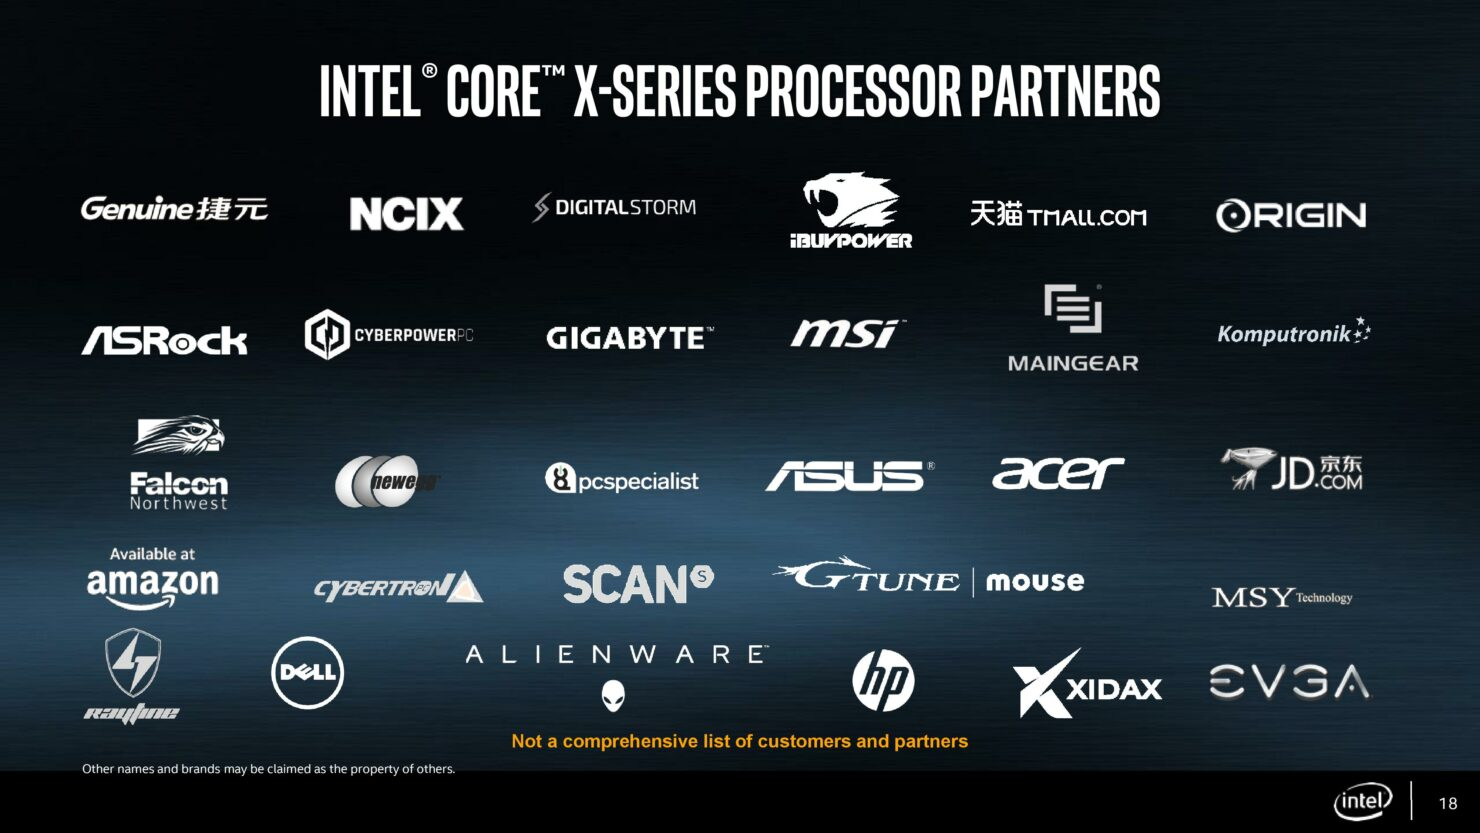 intel-core-x-cpu-skylake-x-and-kaby-lake-x-x299-hedt-platform-launch_partners